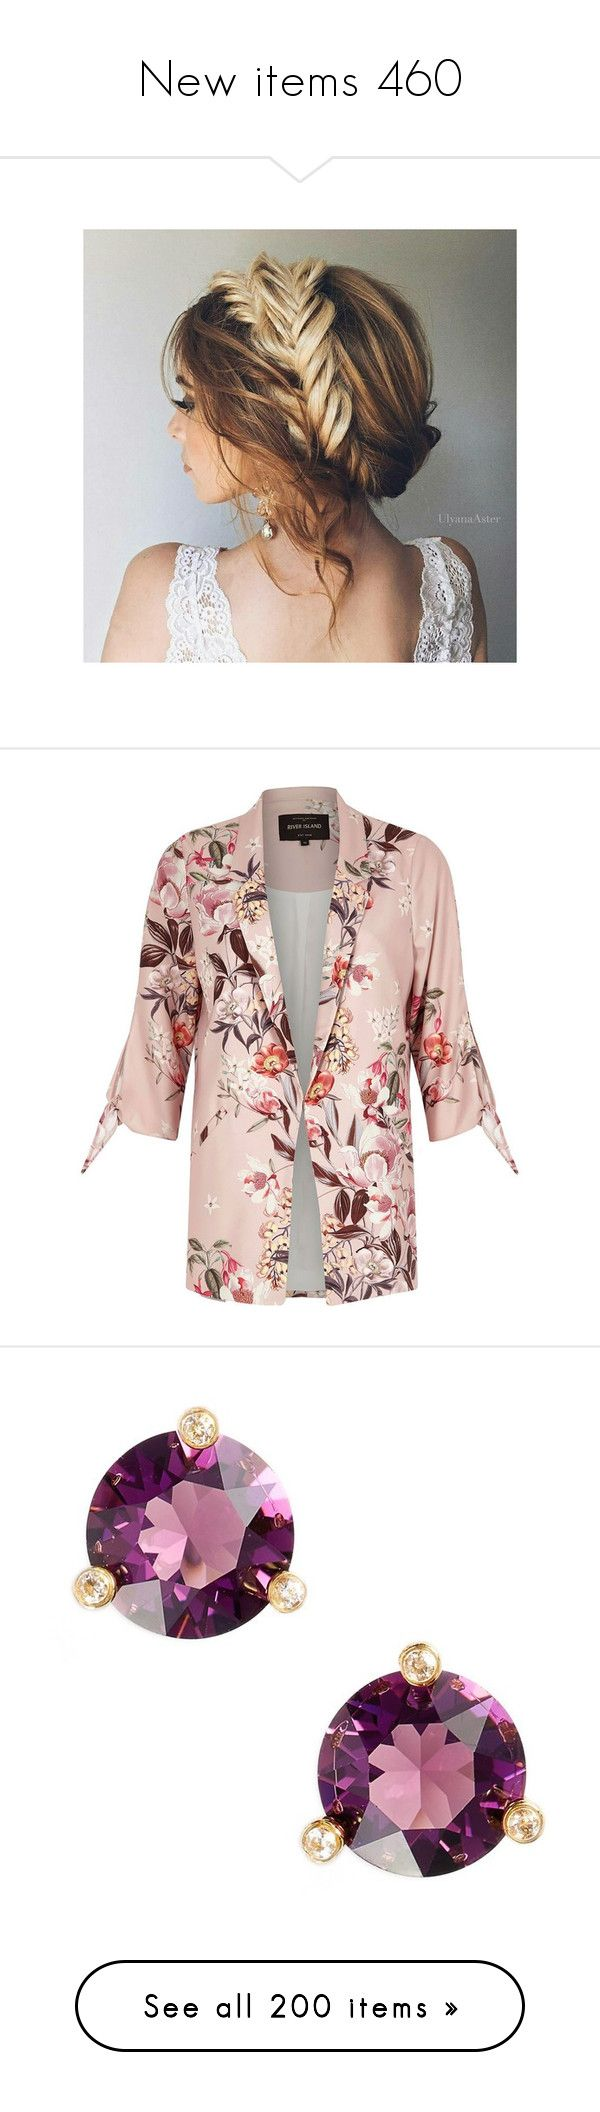 """""""New items 460"""" by cavallaro ❤ liked on Polyvore featuring accessories, outerwear, jackets, blazers, coats, chaqueta, floral-print bomber jackets, floral jackets, tall jackets and pink blazer"""